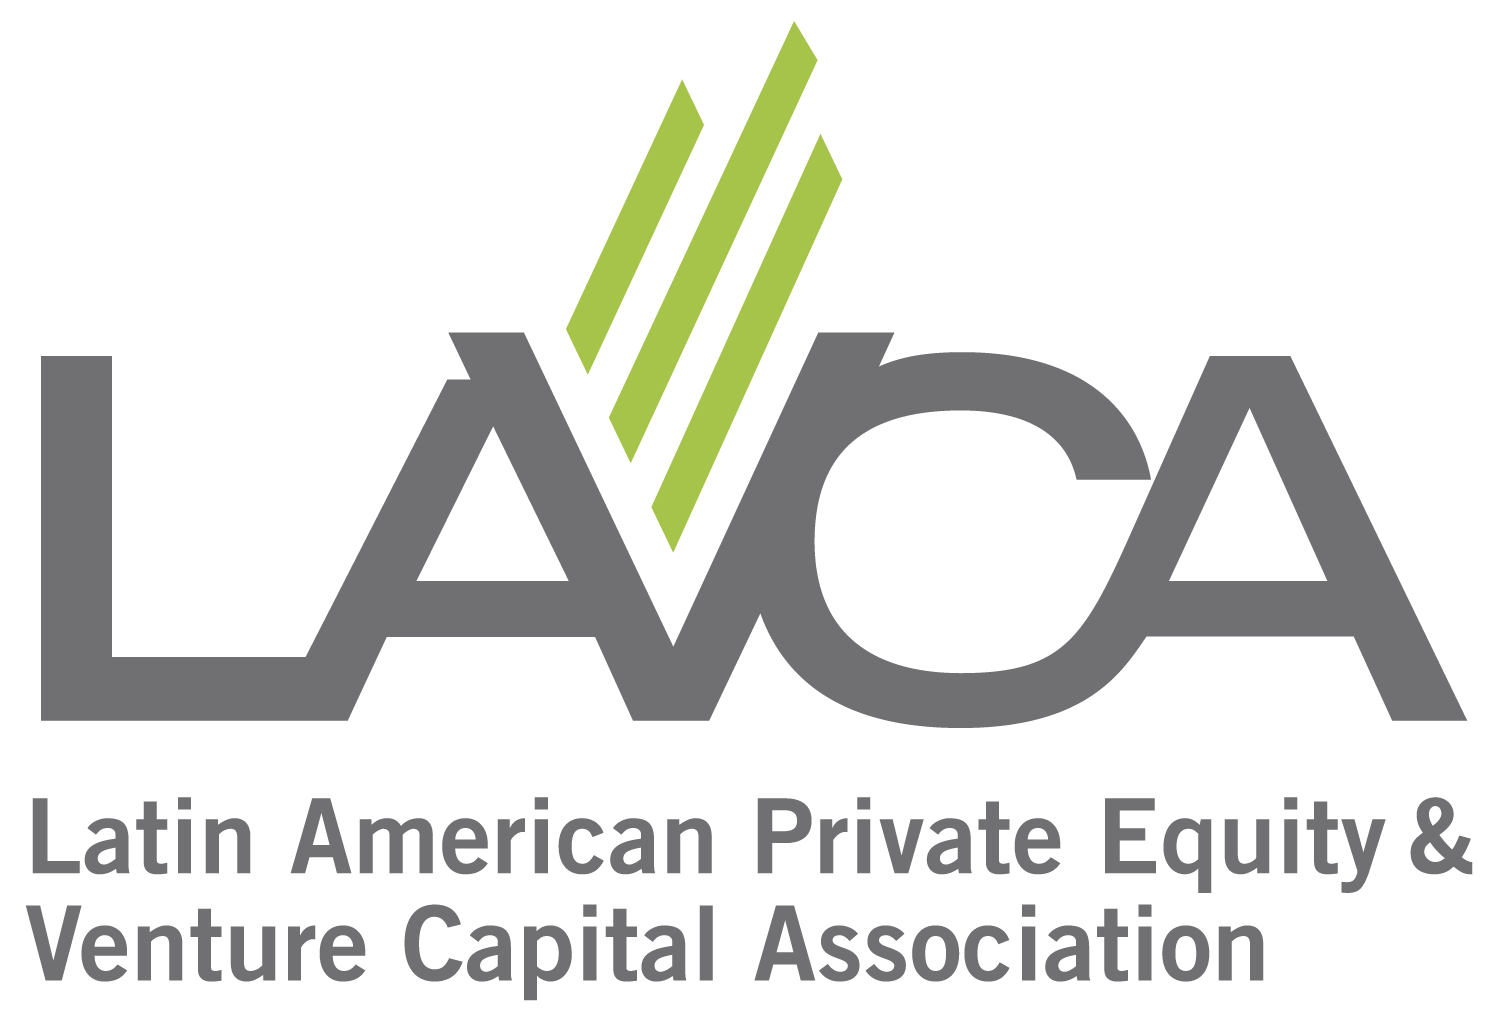 Us vector capital. Lavca latin american private